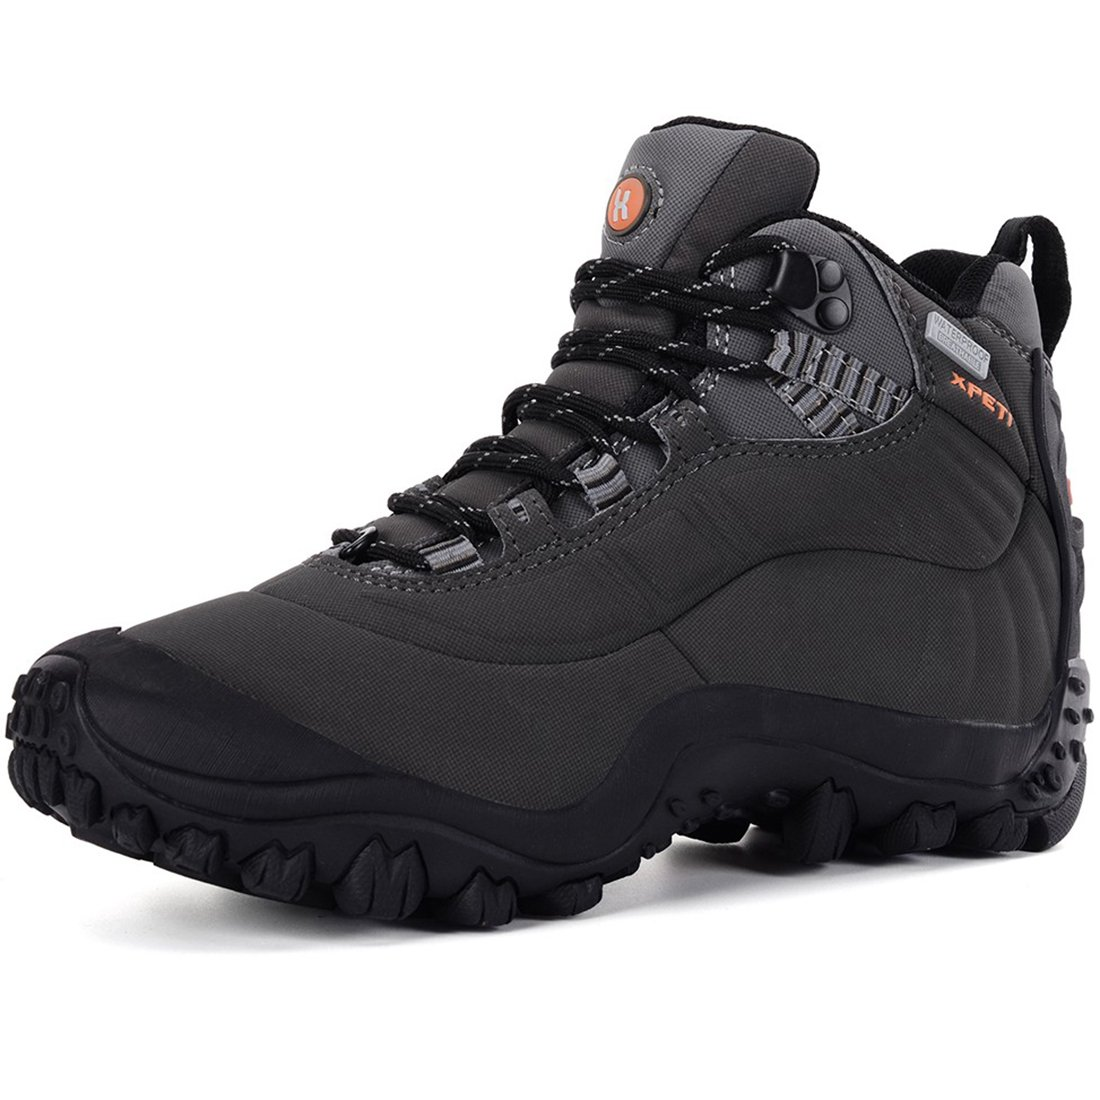 XPETI Men's Thermador Mid Waterproof Hiking Hunting Trail Outdoor Boot Charcoal Grey 10